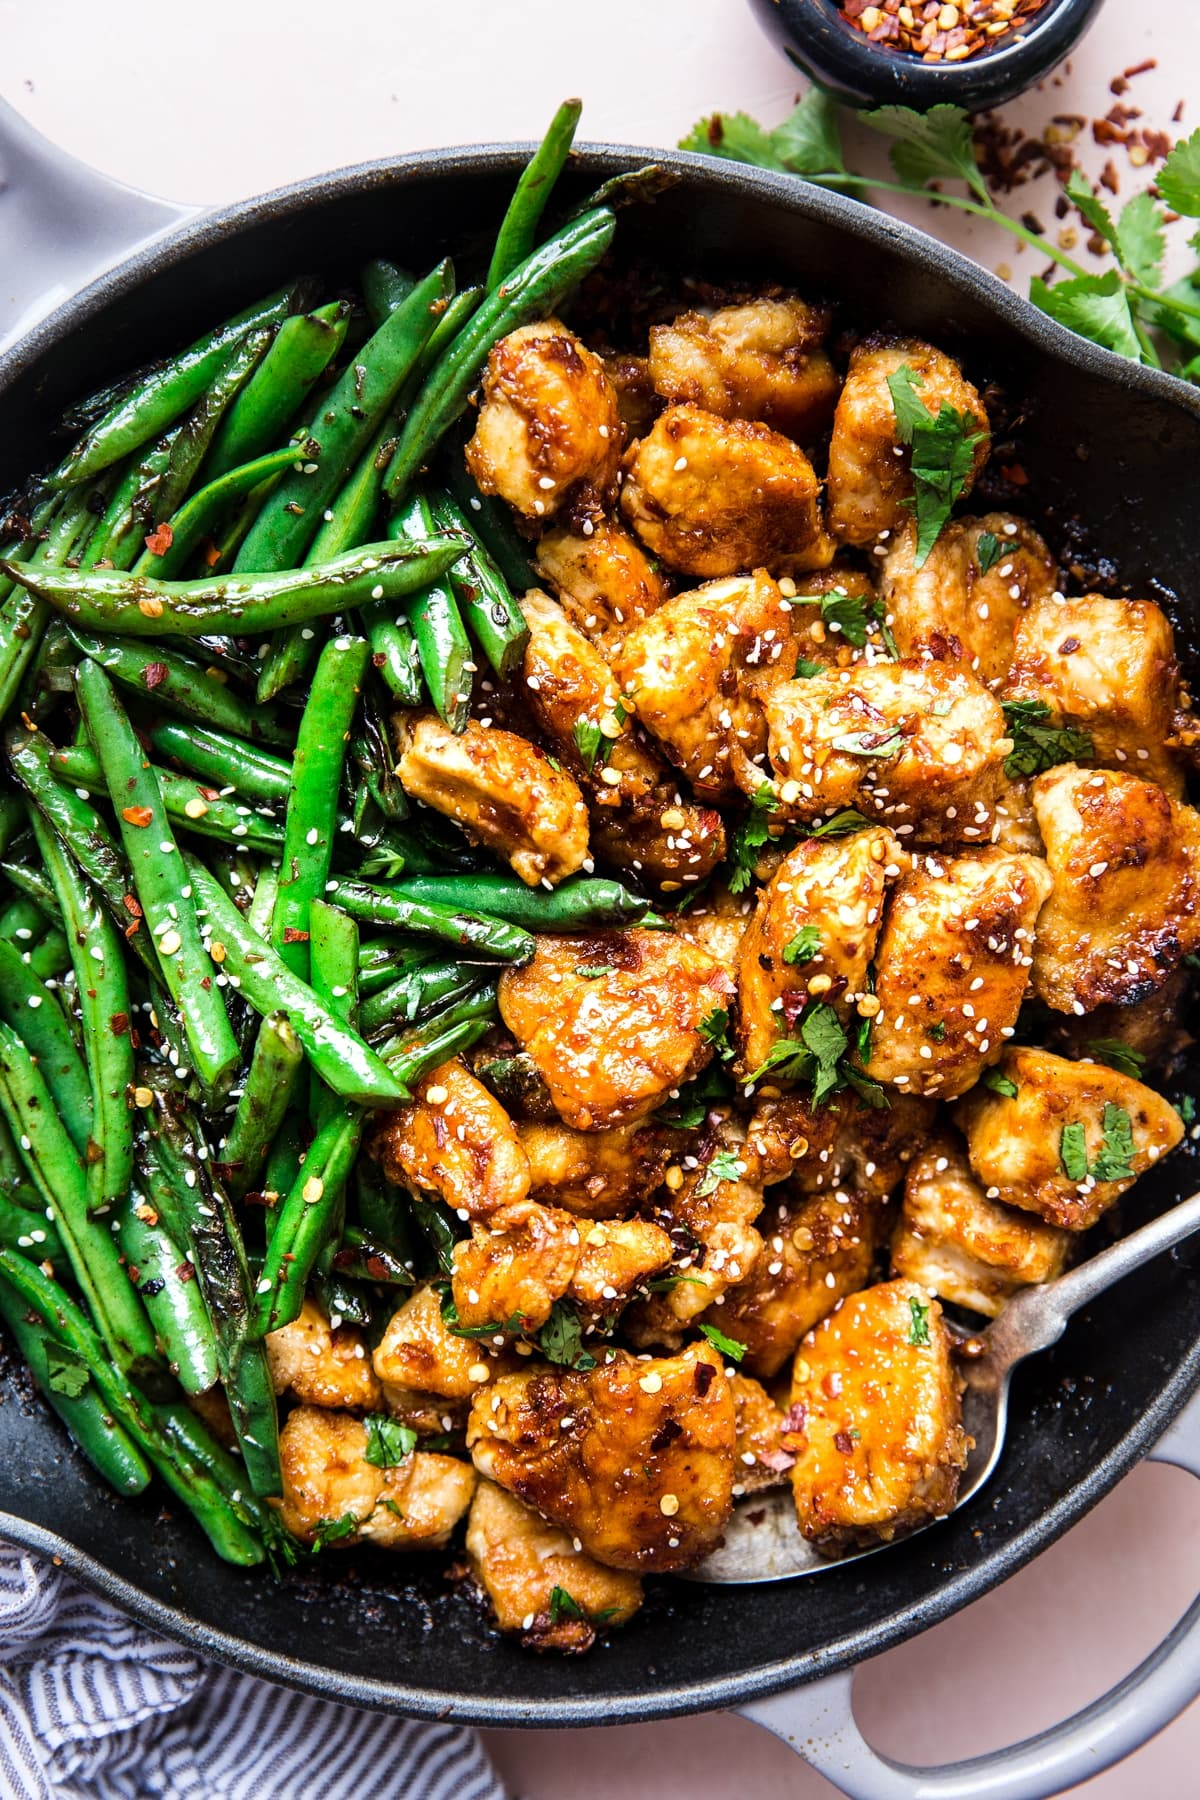 Crispy Chicken Stir Fry The Modern Proper